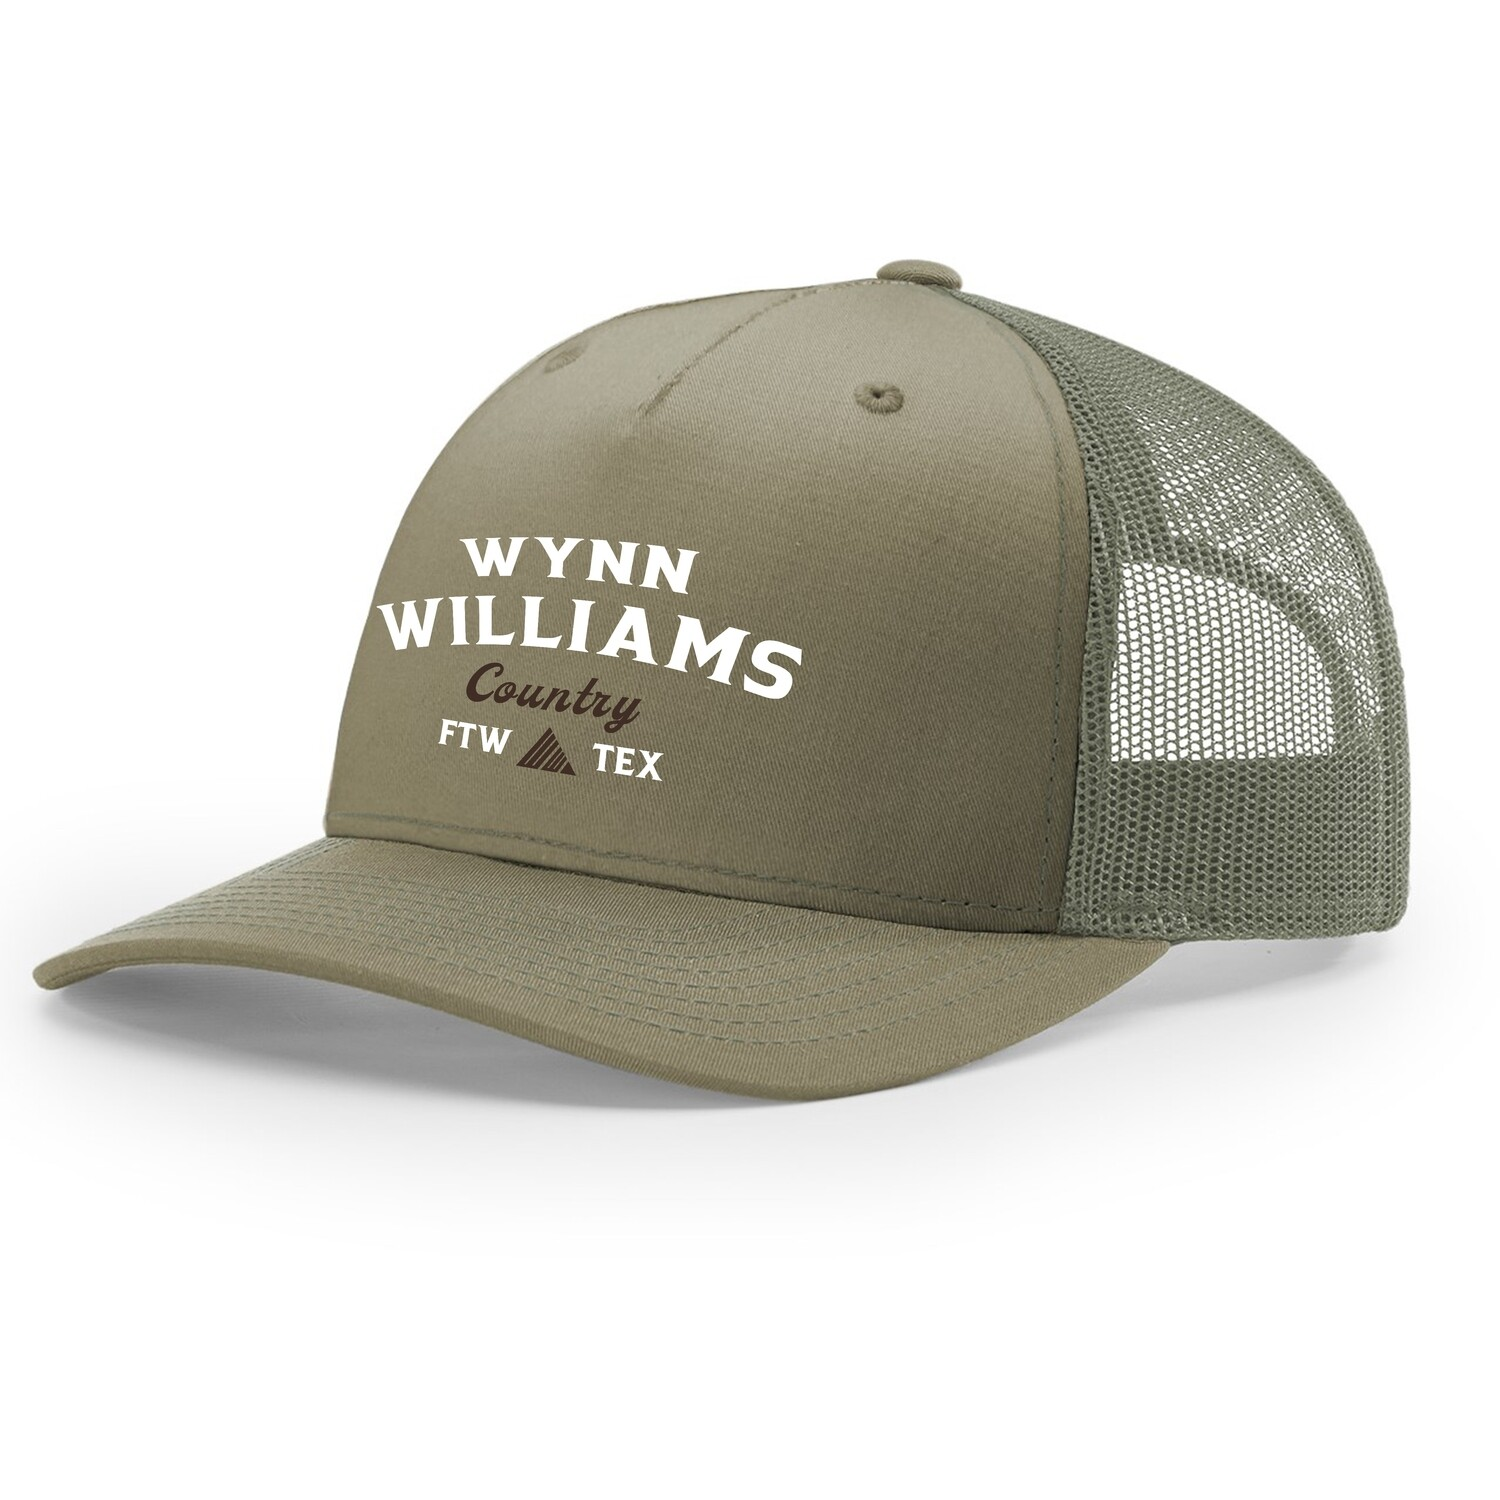 Wynn Williams Country Hat